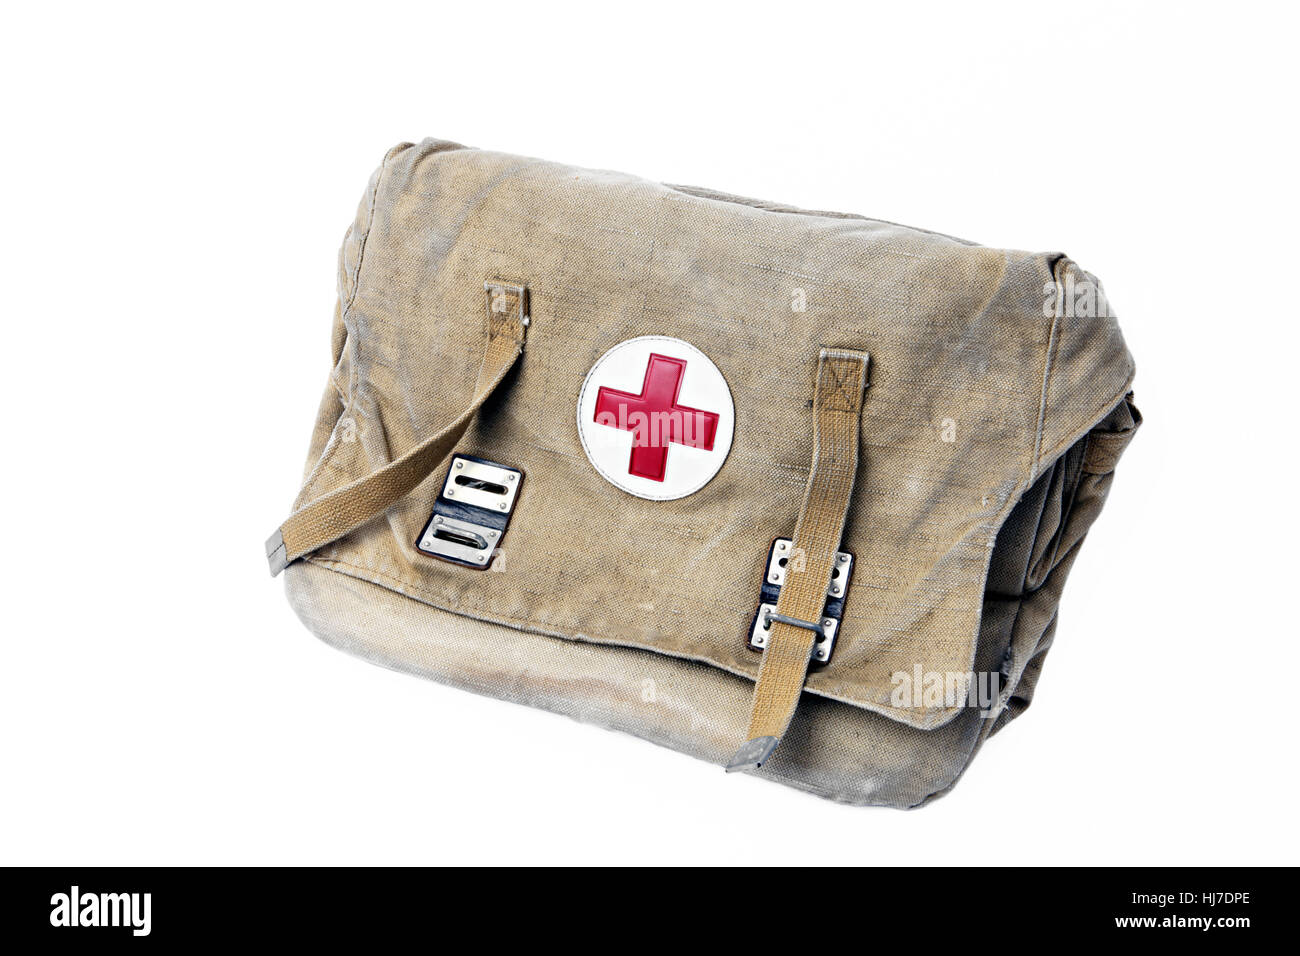 First aid kits - Stock Image